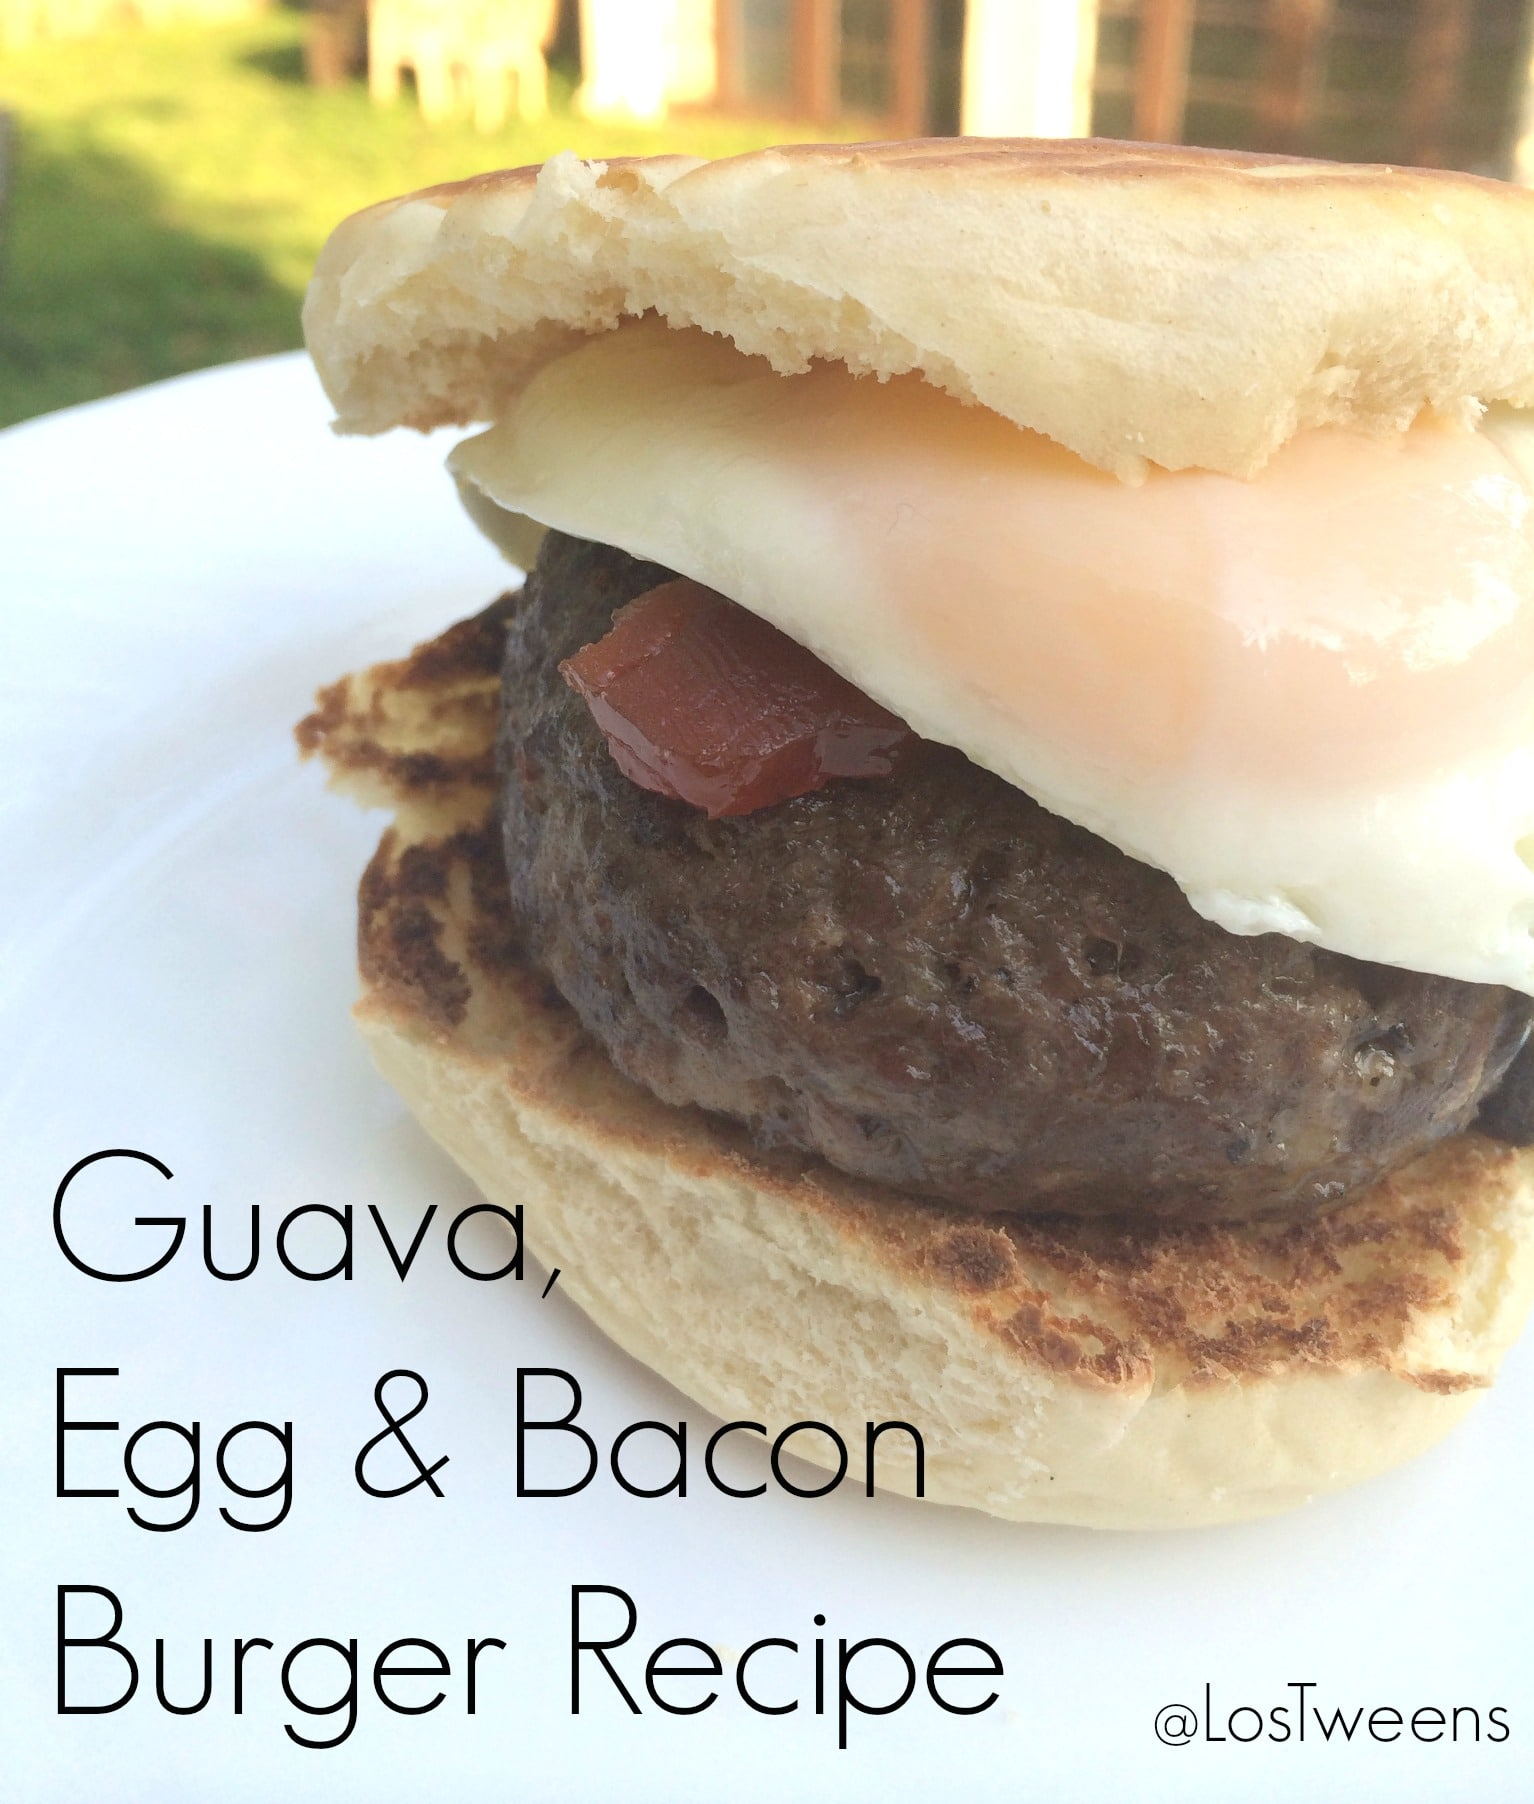 guava egg and bacon burger recipe